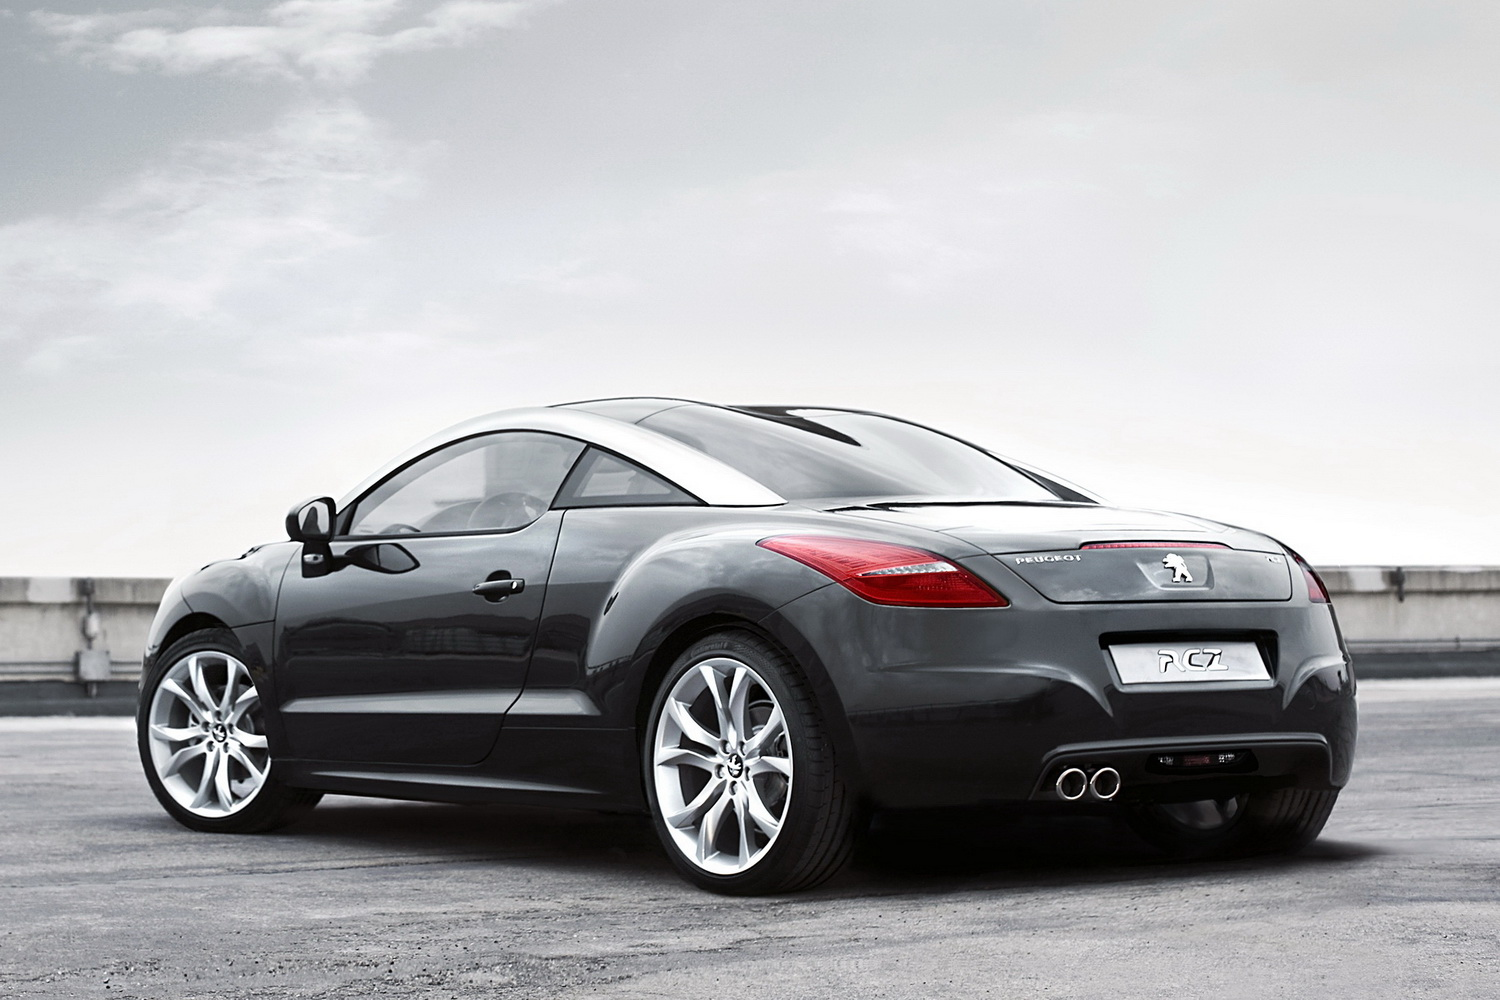 Peugeot RCZ Wallpaper Car Free Download Image Of